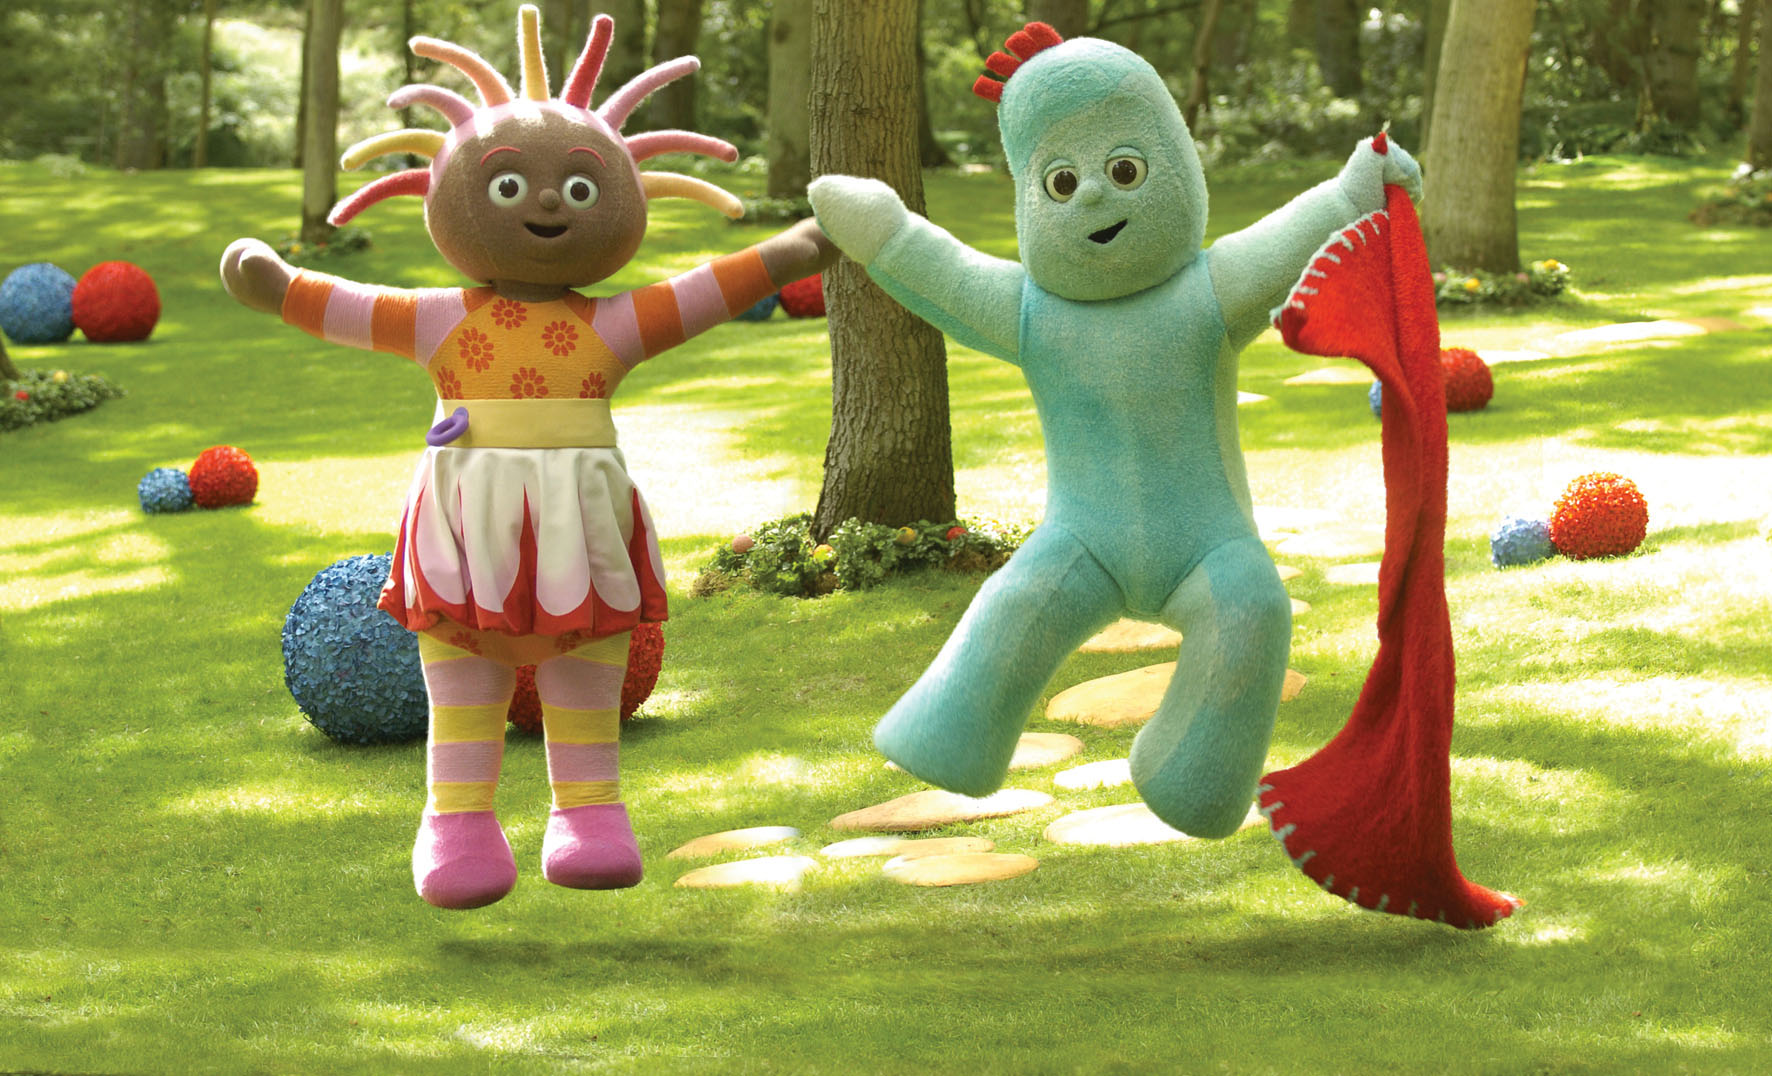 Canada's DHX Media (TSX:DHX) today acquired In the Night Garden, Teletubbies and 10 other children's series with the purchase of the UK's Ragdoll Worldwide Ltd. for approximately $28.4-million CAD. In the Night Garden characters shown (L-R): Upsy Daisy and Igglepiggle. (CNW Group/DHX MEDIA LTD.)